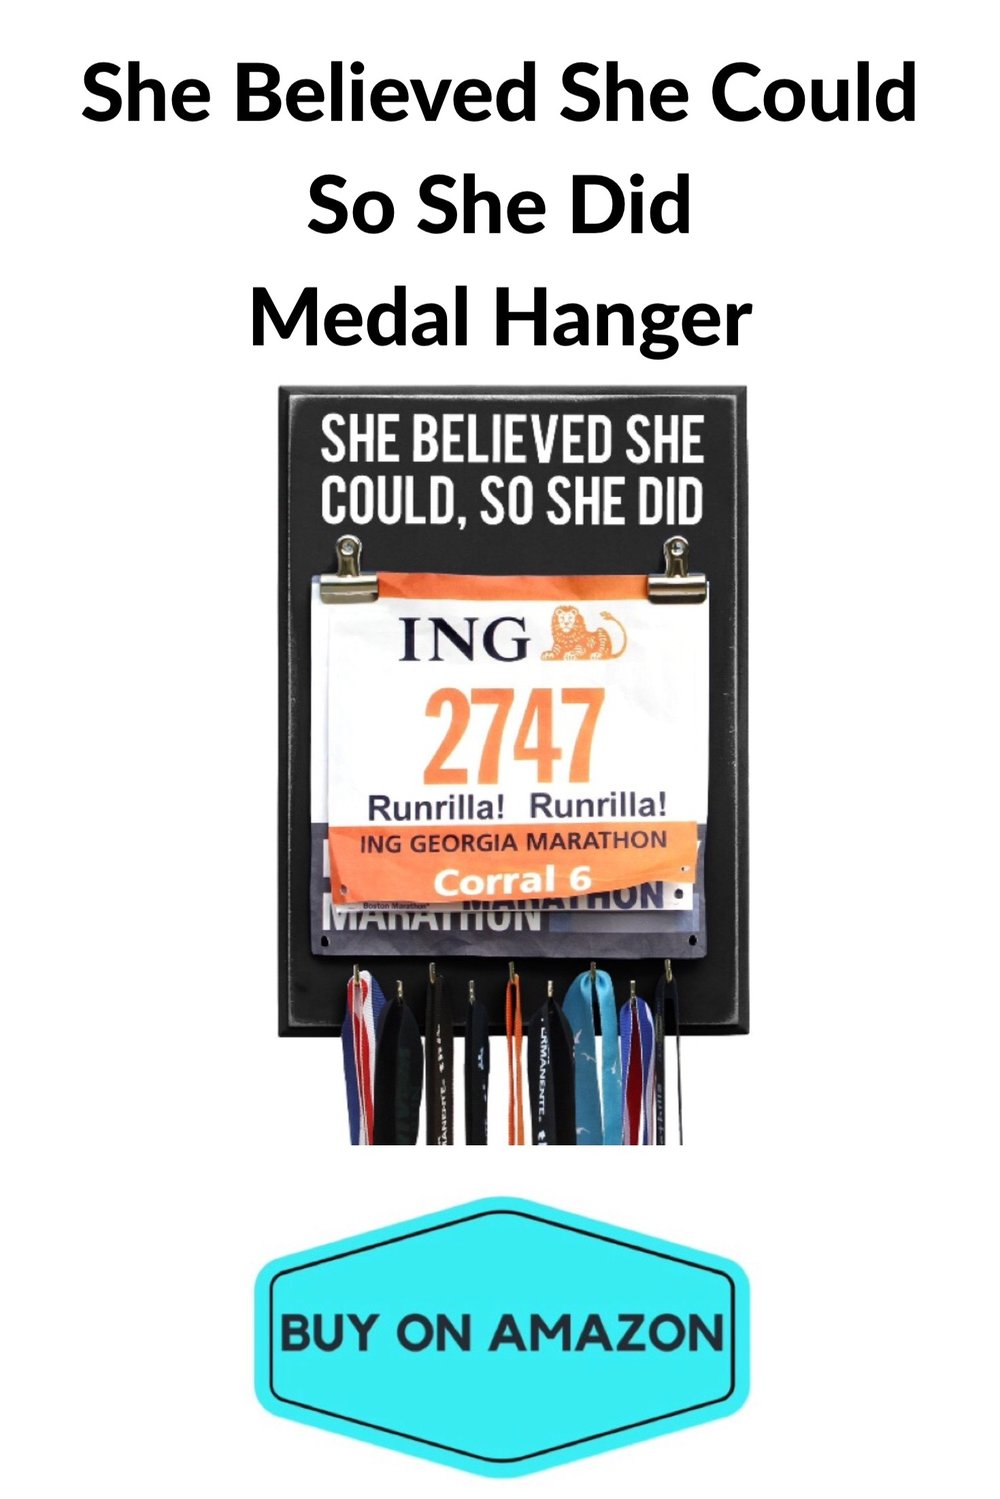 'She Believed She Could So She Did' Medal Hanger